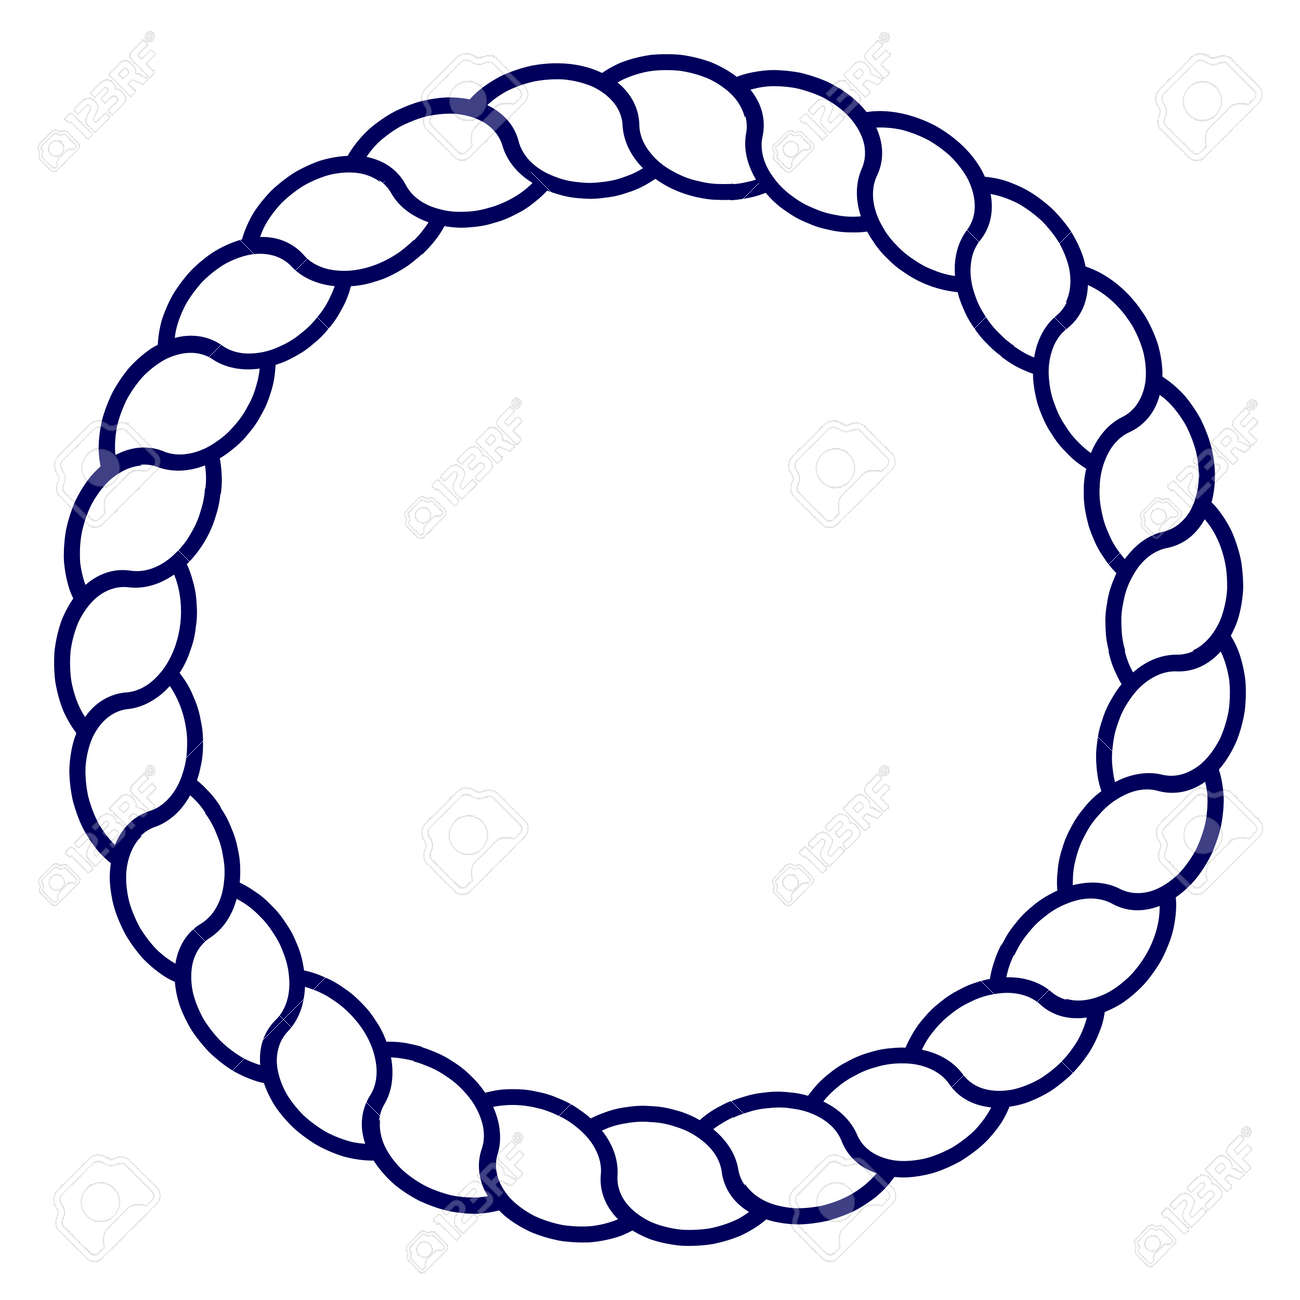 circle blue navy rope vector line art isolated royalty free rh 123rf com rope vector png rope vector borders free